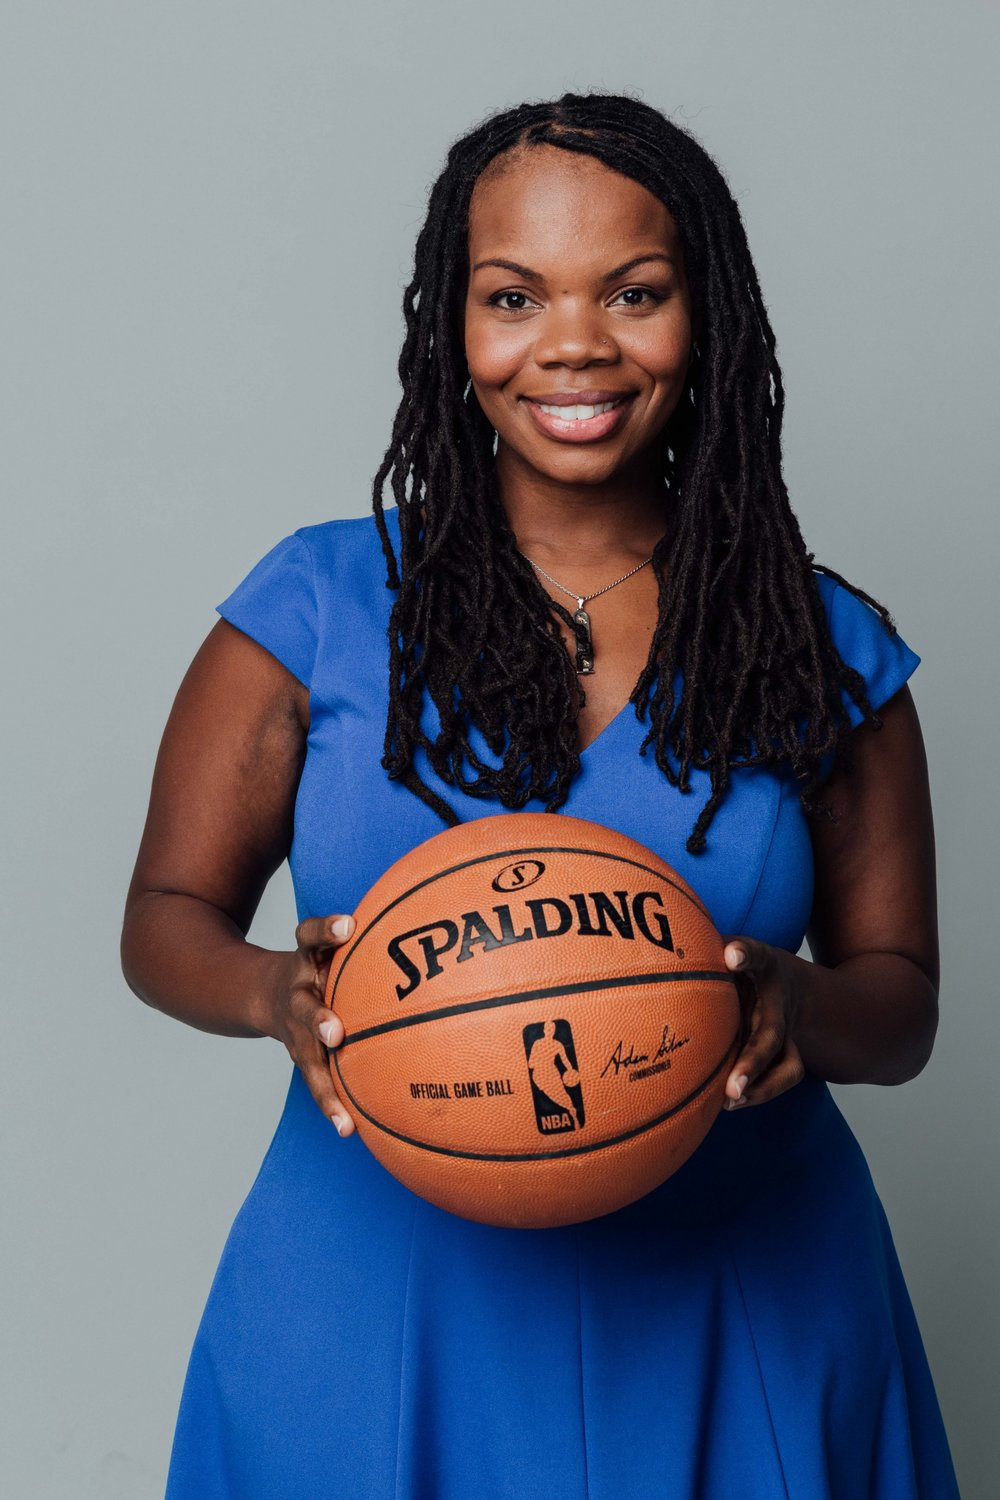 Mellisa McGhie Proctor WFU '02  Photo credit: https://medium.com/@msmelissammm